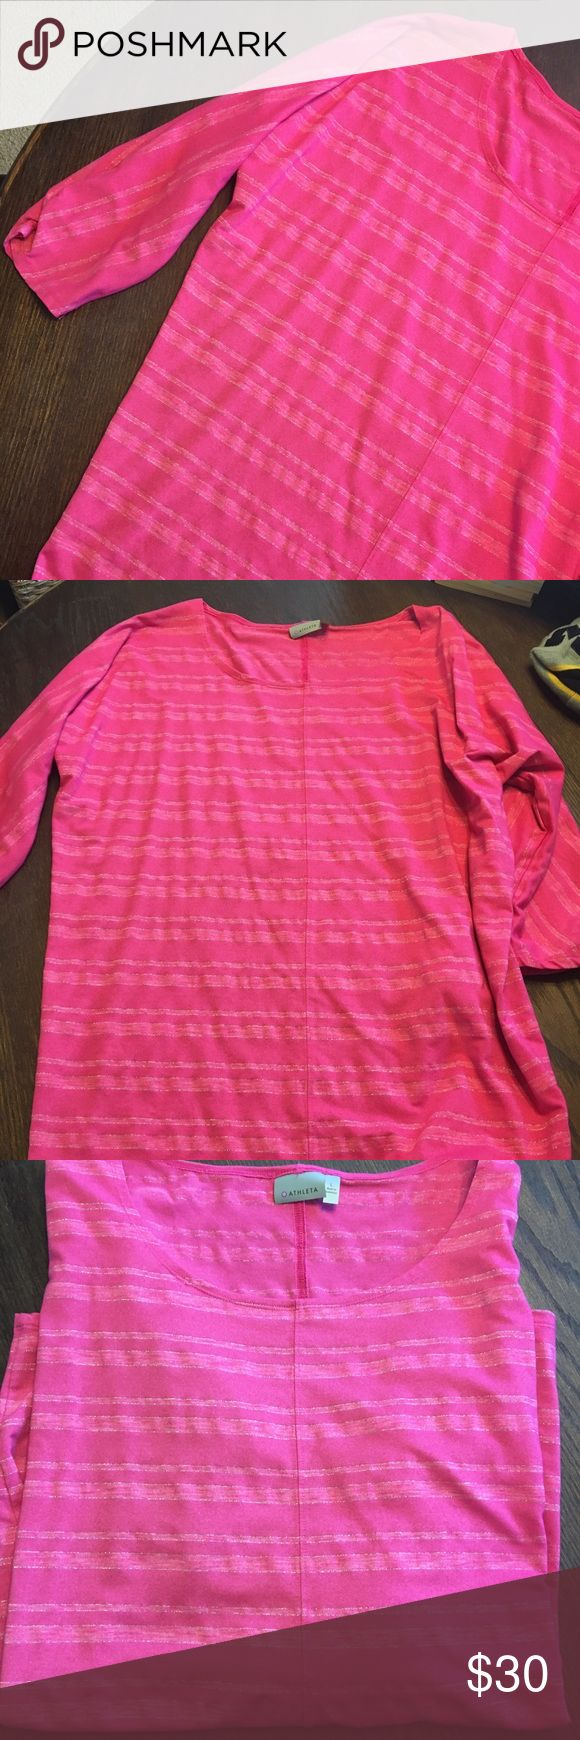 Athleta Pink and Silver Batwing top ❤️ Gorgeous Athleta like new top! Perfect for throwing on for working out or out on the town for lunch. 48 bust 29 length. 3/4 length sleeves , stretchy material. Fast Shipping! Athleta Tops